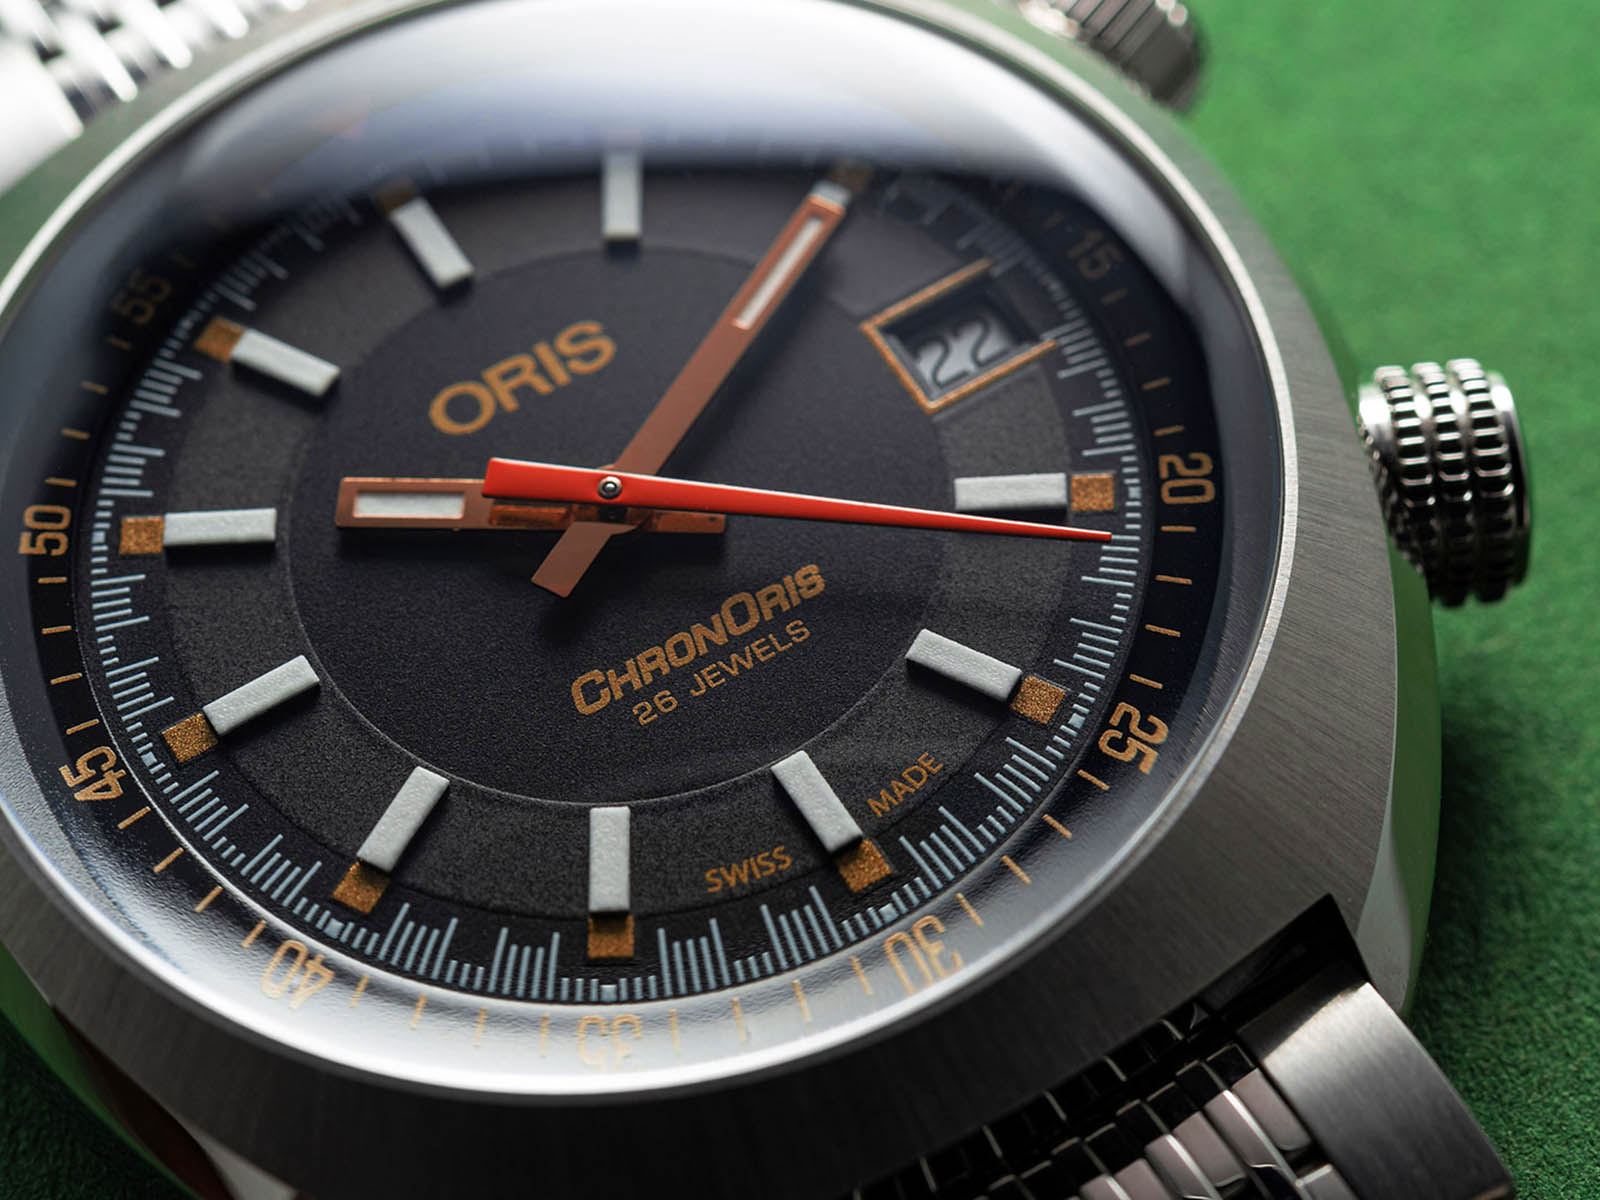 01-733-7737-4034-set-mb-oris-chronoris-movember-edition-2019-3.jpg